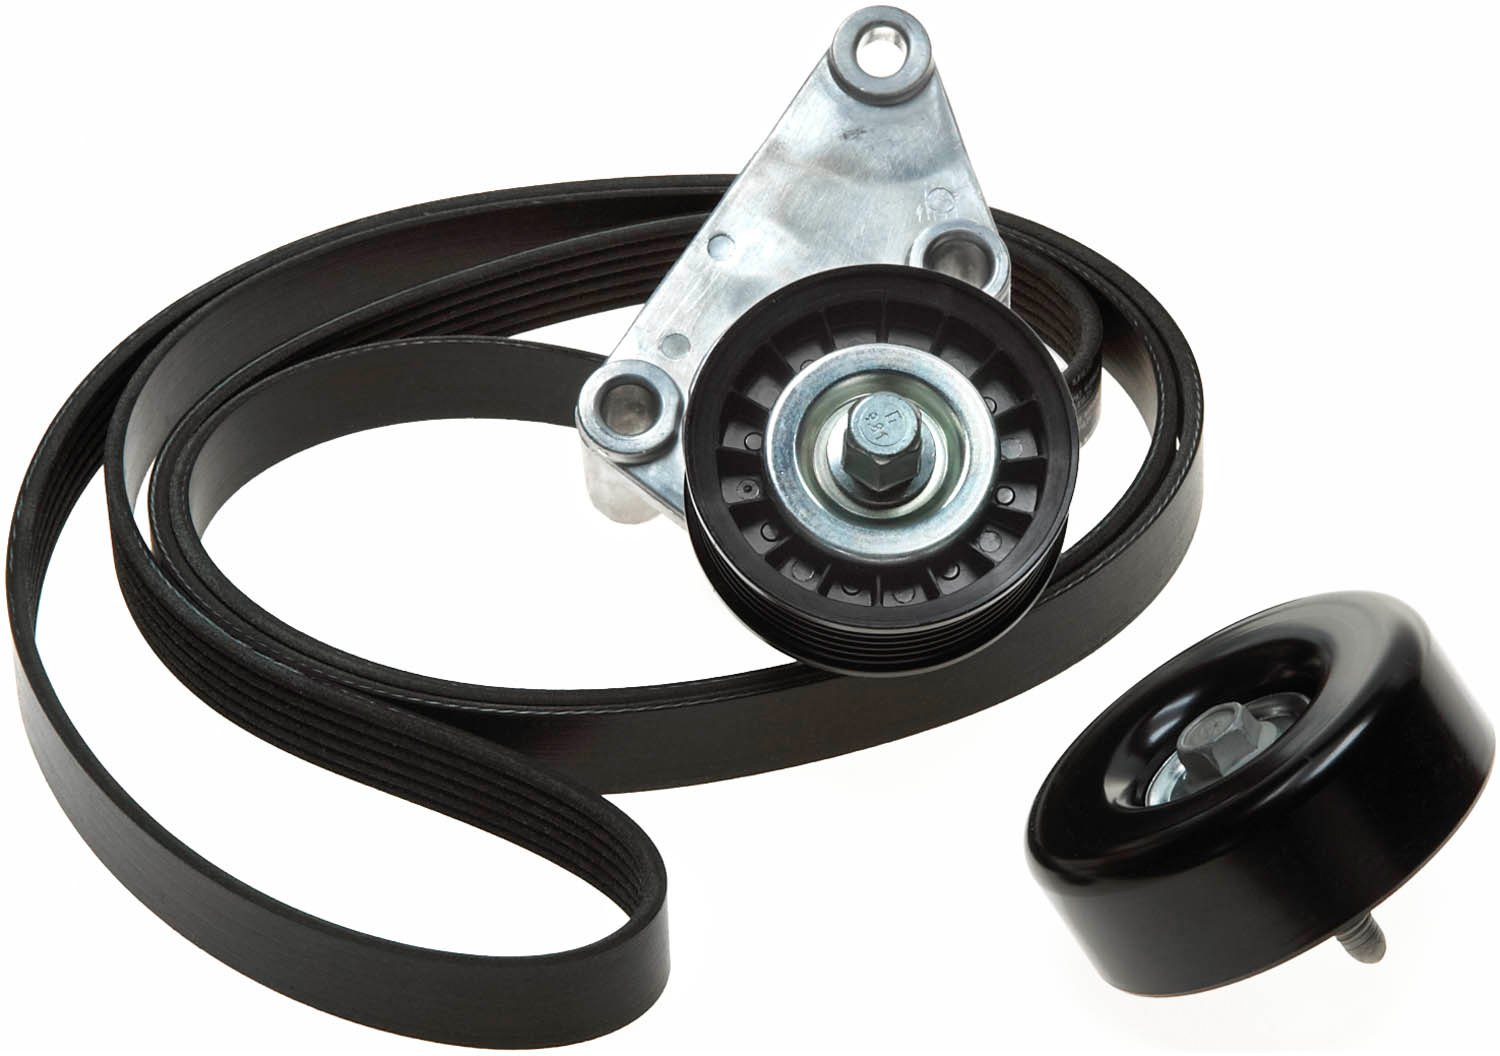 ACDelco ACK060923K1 Professional Accessory Belt Drive System Tensioner Kit